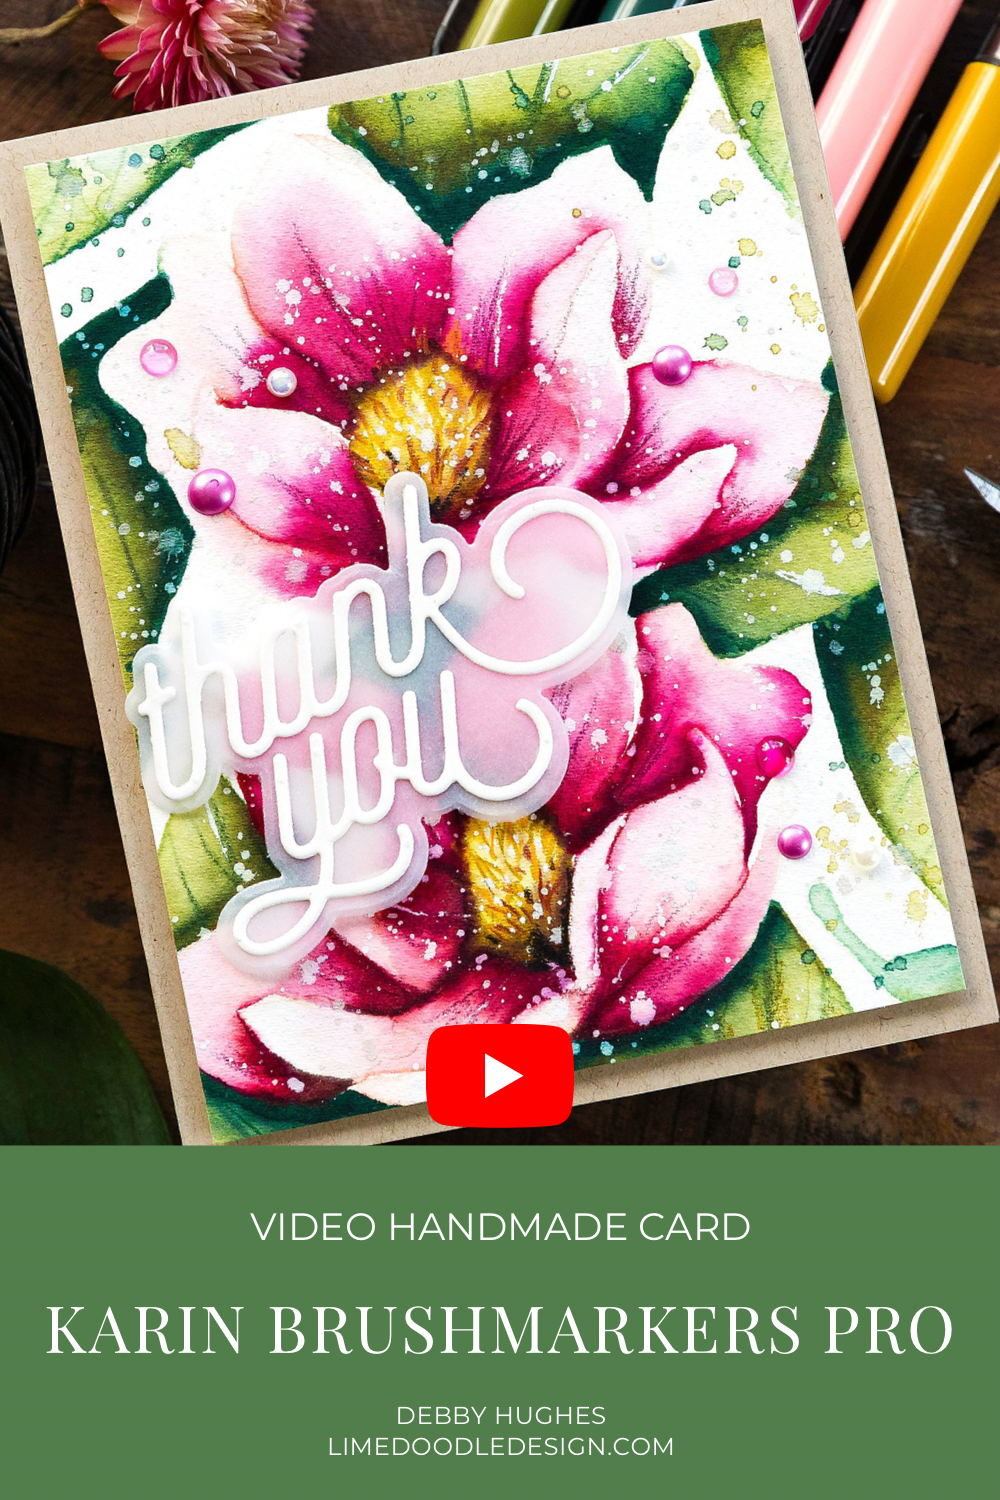 Video tutorial - Karin Brushmarkers Pro - mixing colours. Handmade thank you Magnolia card by Debby Hughes #debbyhughes #limedoodledesign #handmadecards #cardmaking #cardmakingideas #cardmakingtechniques  #cardmakingtutorials #handmadecardideas #simonsaysstamp